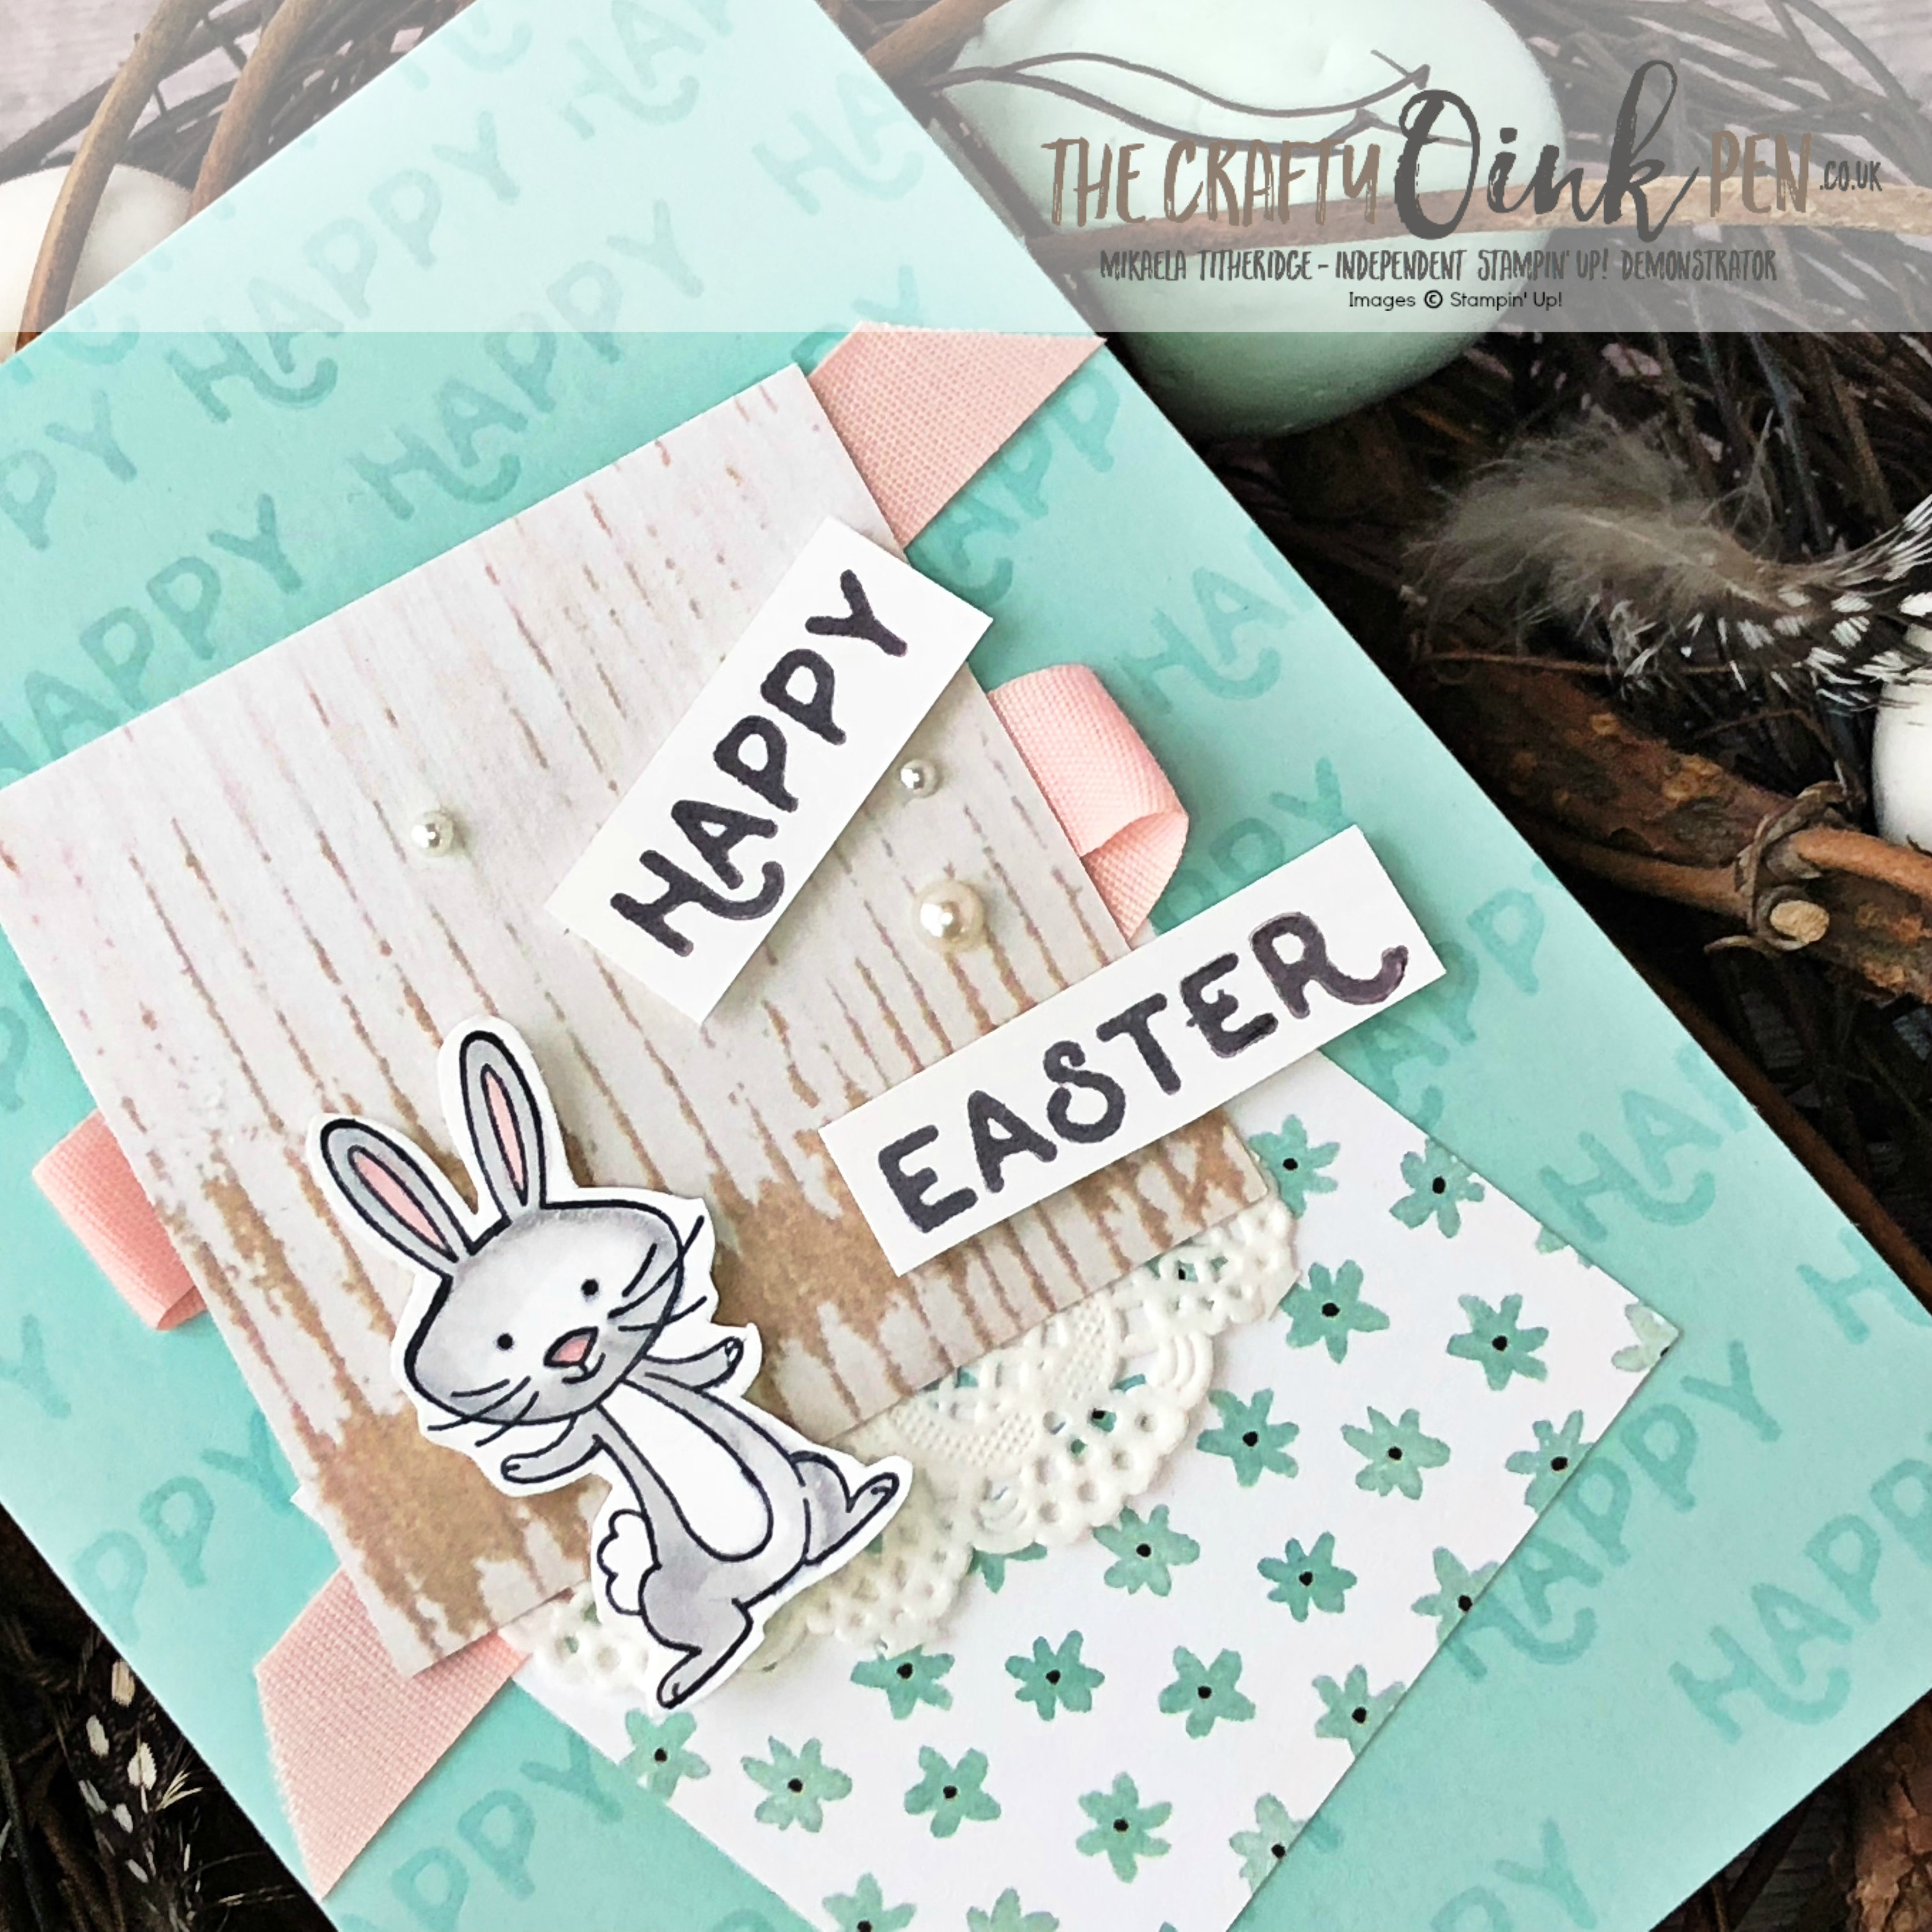 We Must Celebrate Easter with SUBA Easter Inspiration by Mikaela Titheridge, UK Independent Stampin' Up! Demonstrator, The Crafty oINK Pen. Supplies available through my online store 24/7